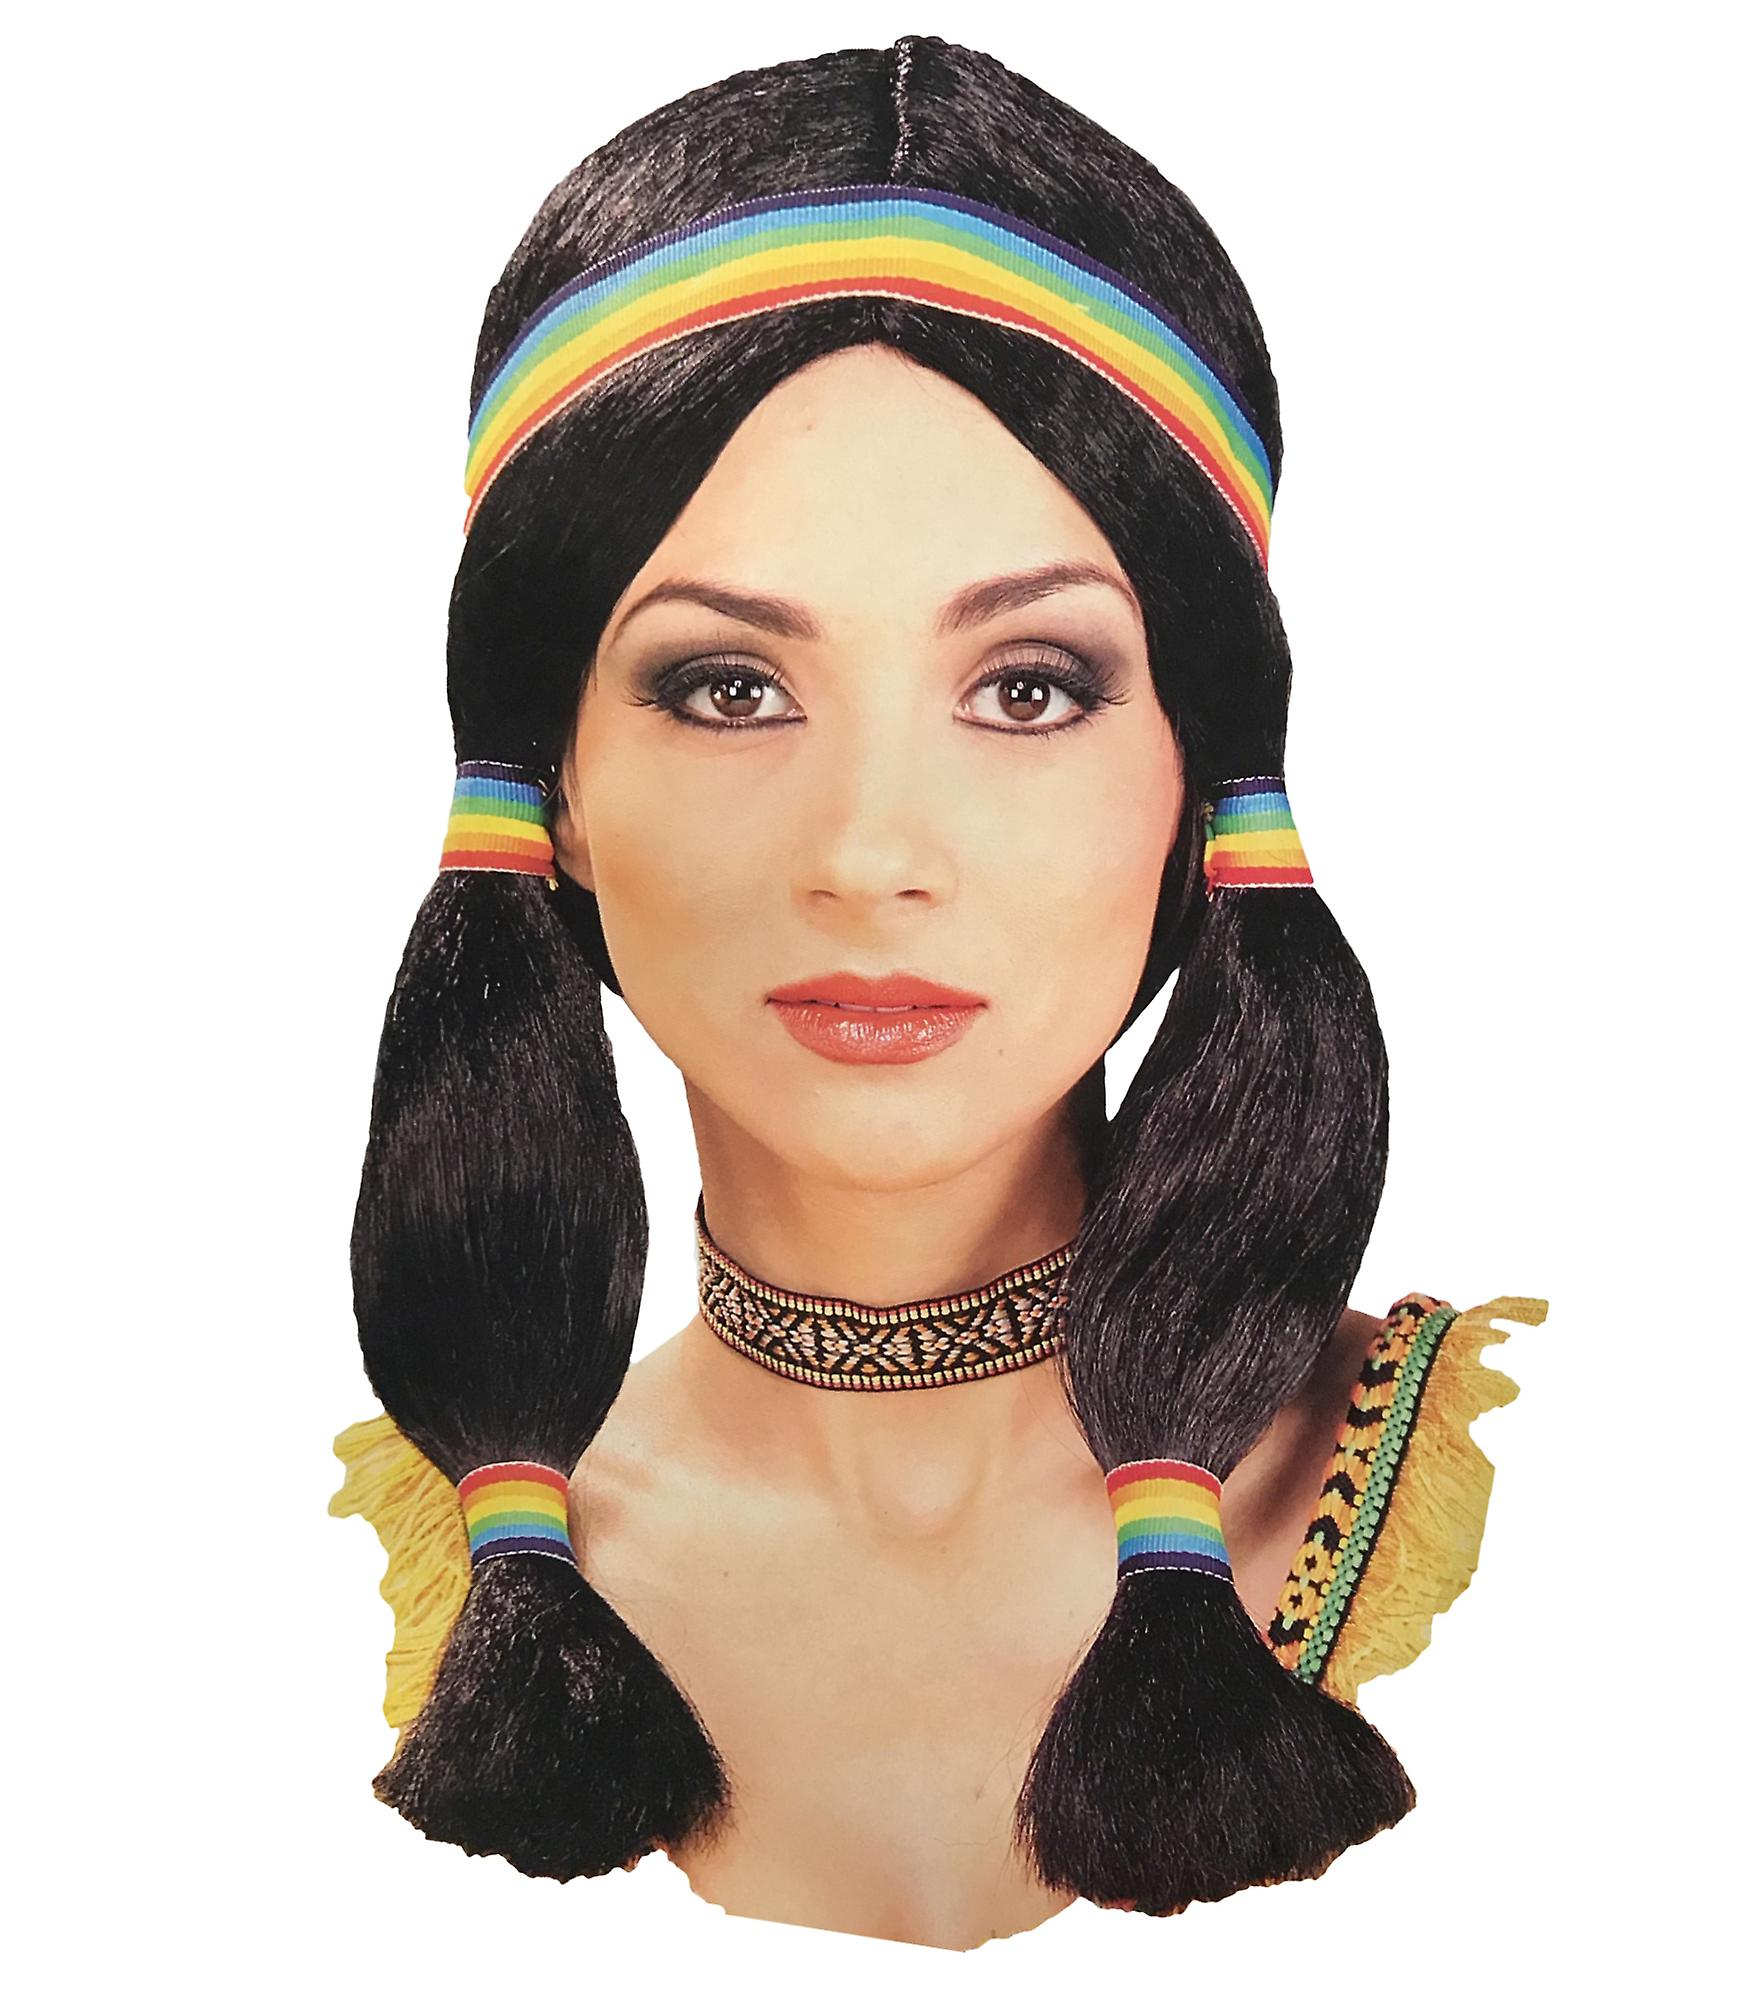 Native American Pocahontas Indian Princess Western Women Costume Wig